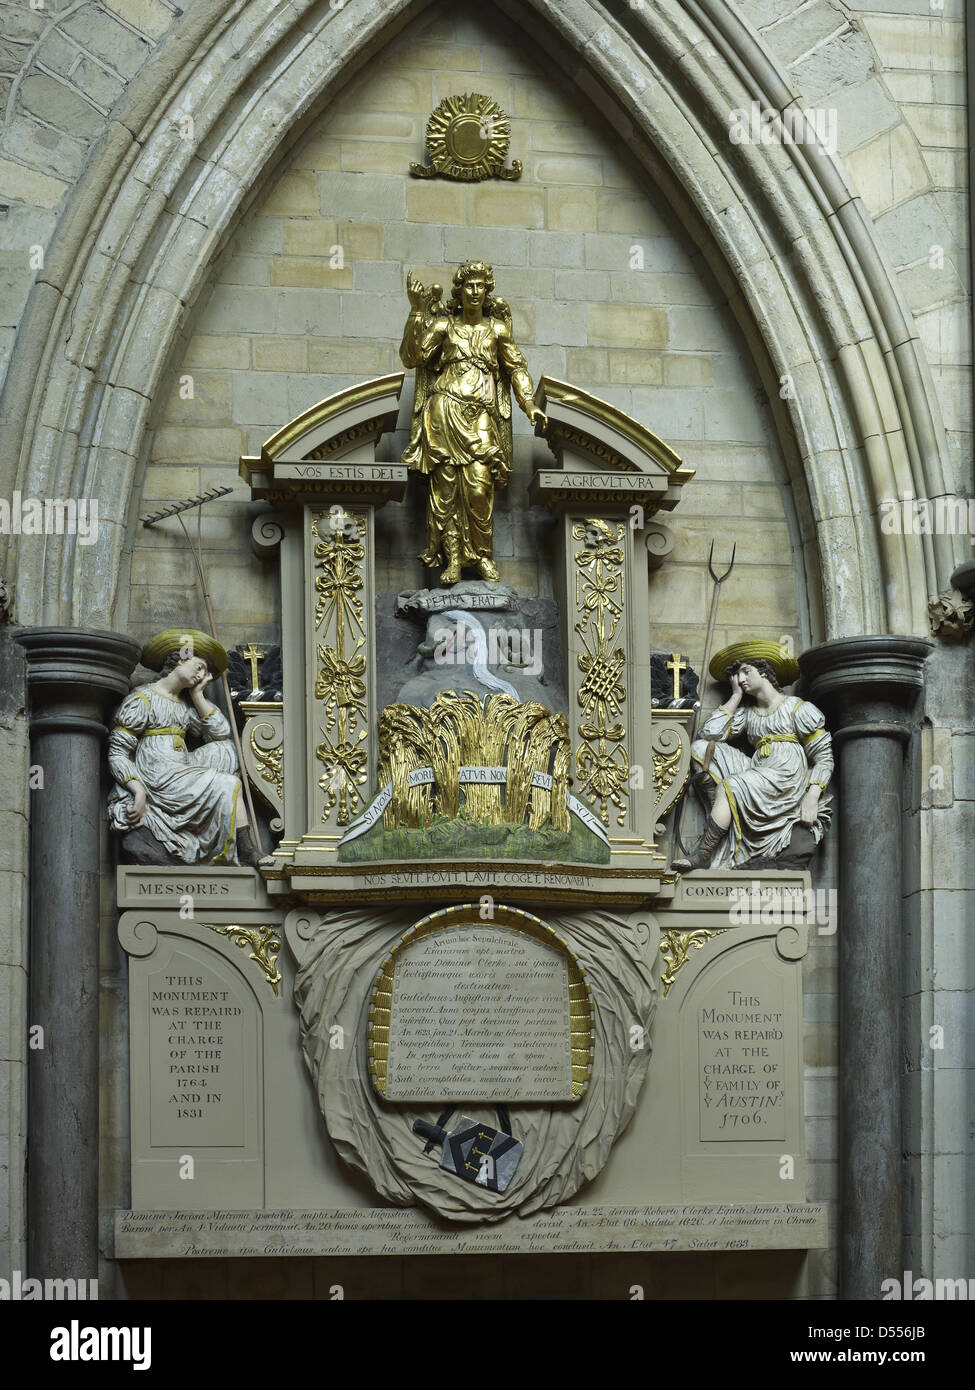 Southwark Cathedral Austin momemorial - Stock Image